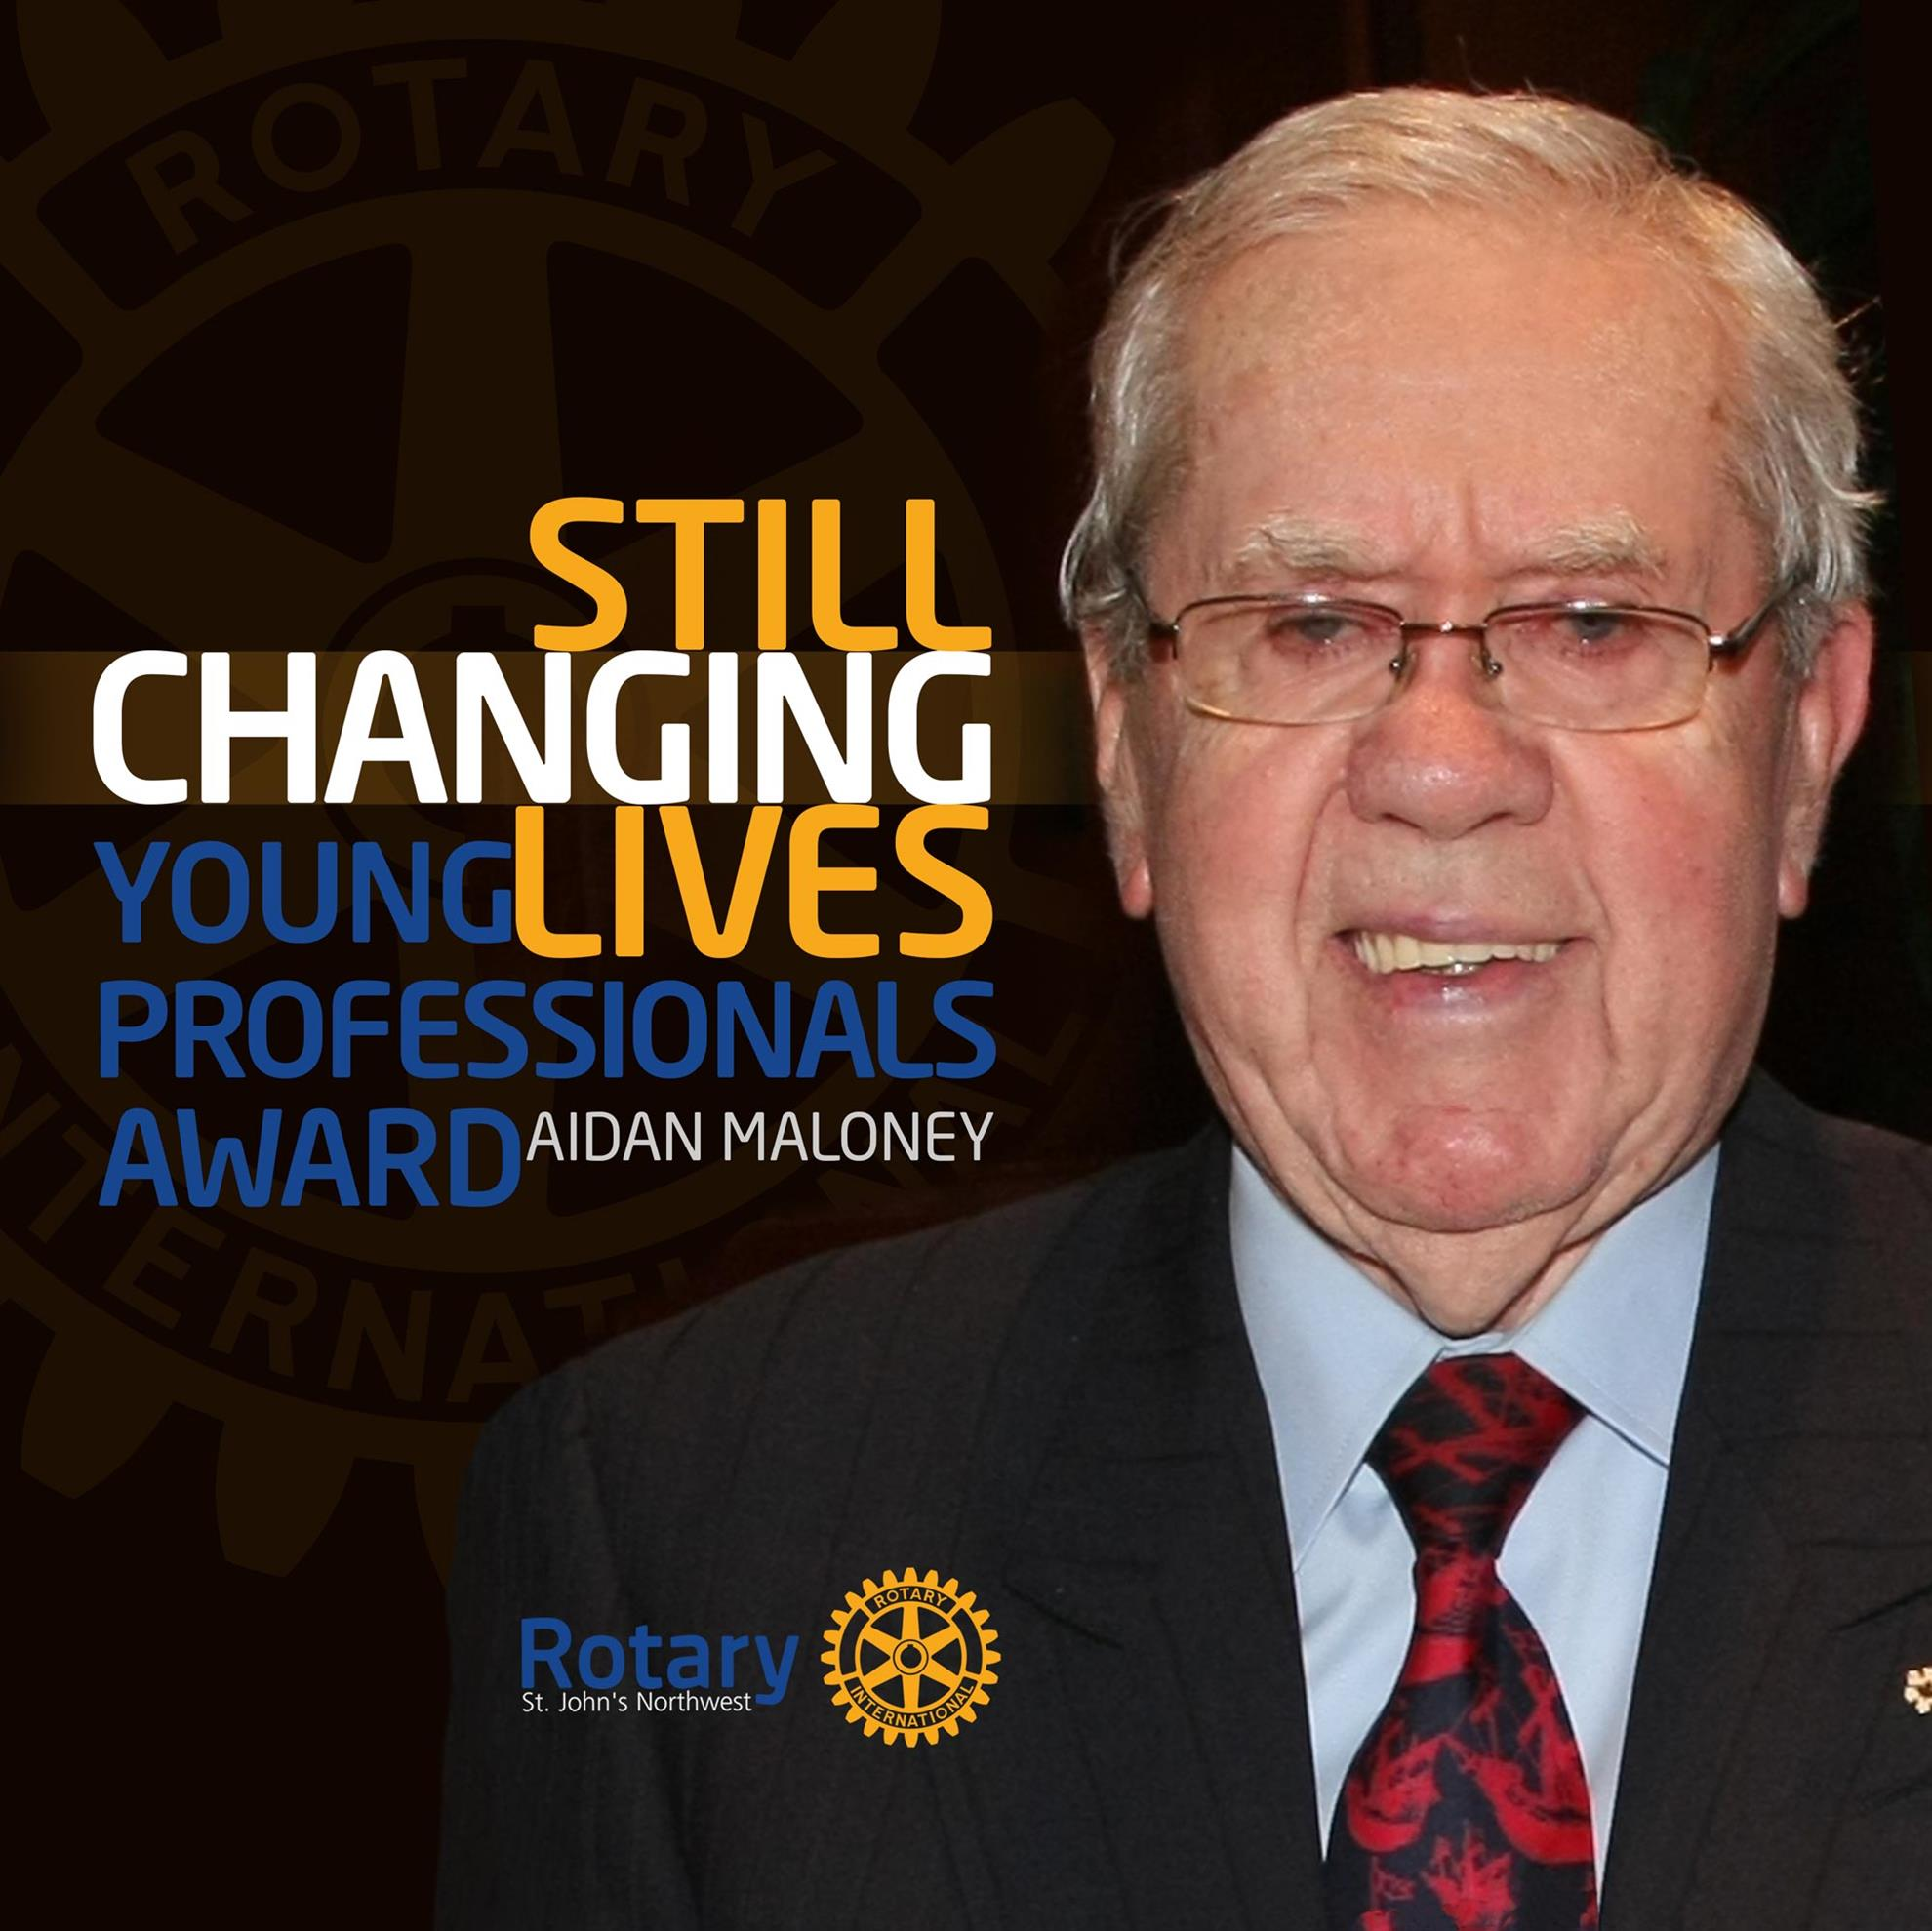 Apply now for the Aidan Maloney Award